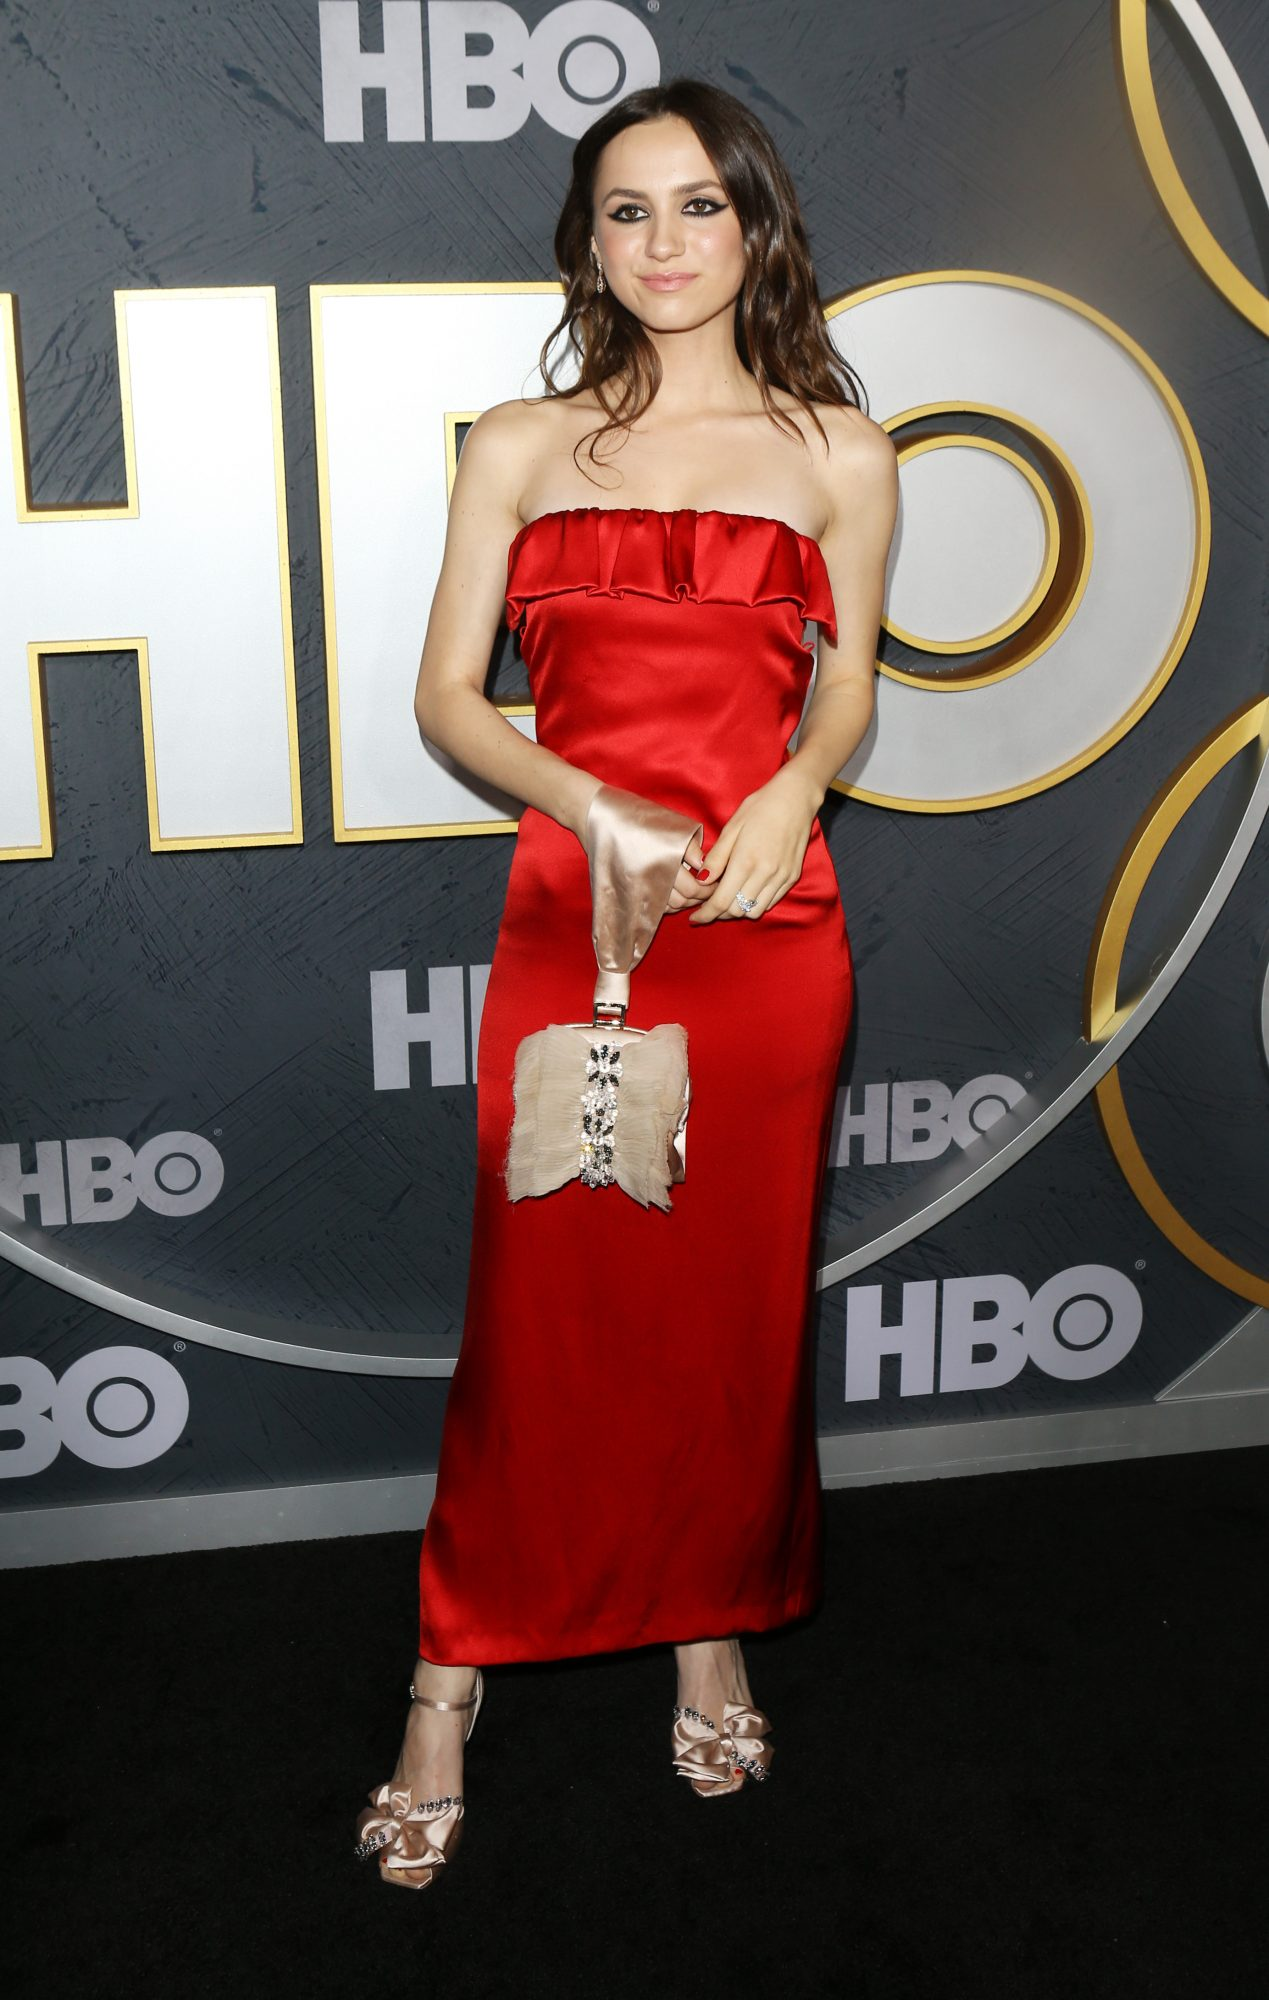 Emmys After-Party - Maude Apatow